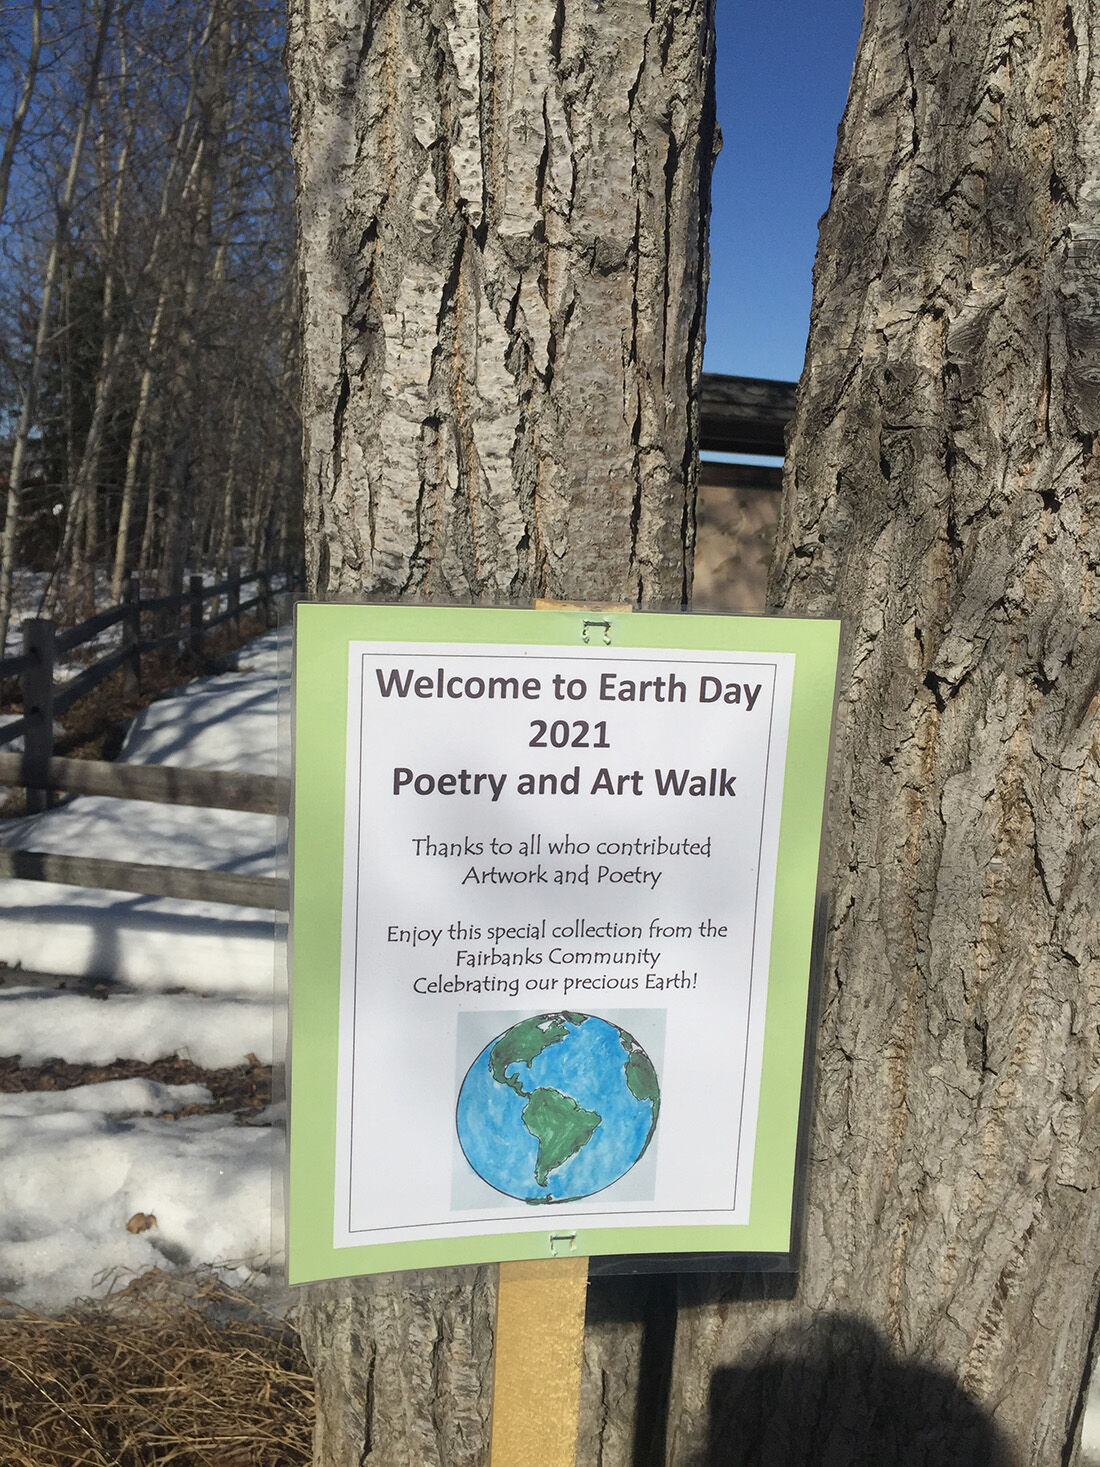 Earth Day Poetry and Art Walk at Creamer's Field